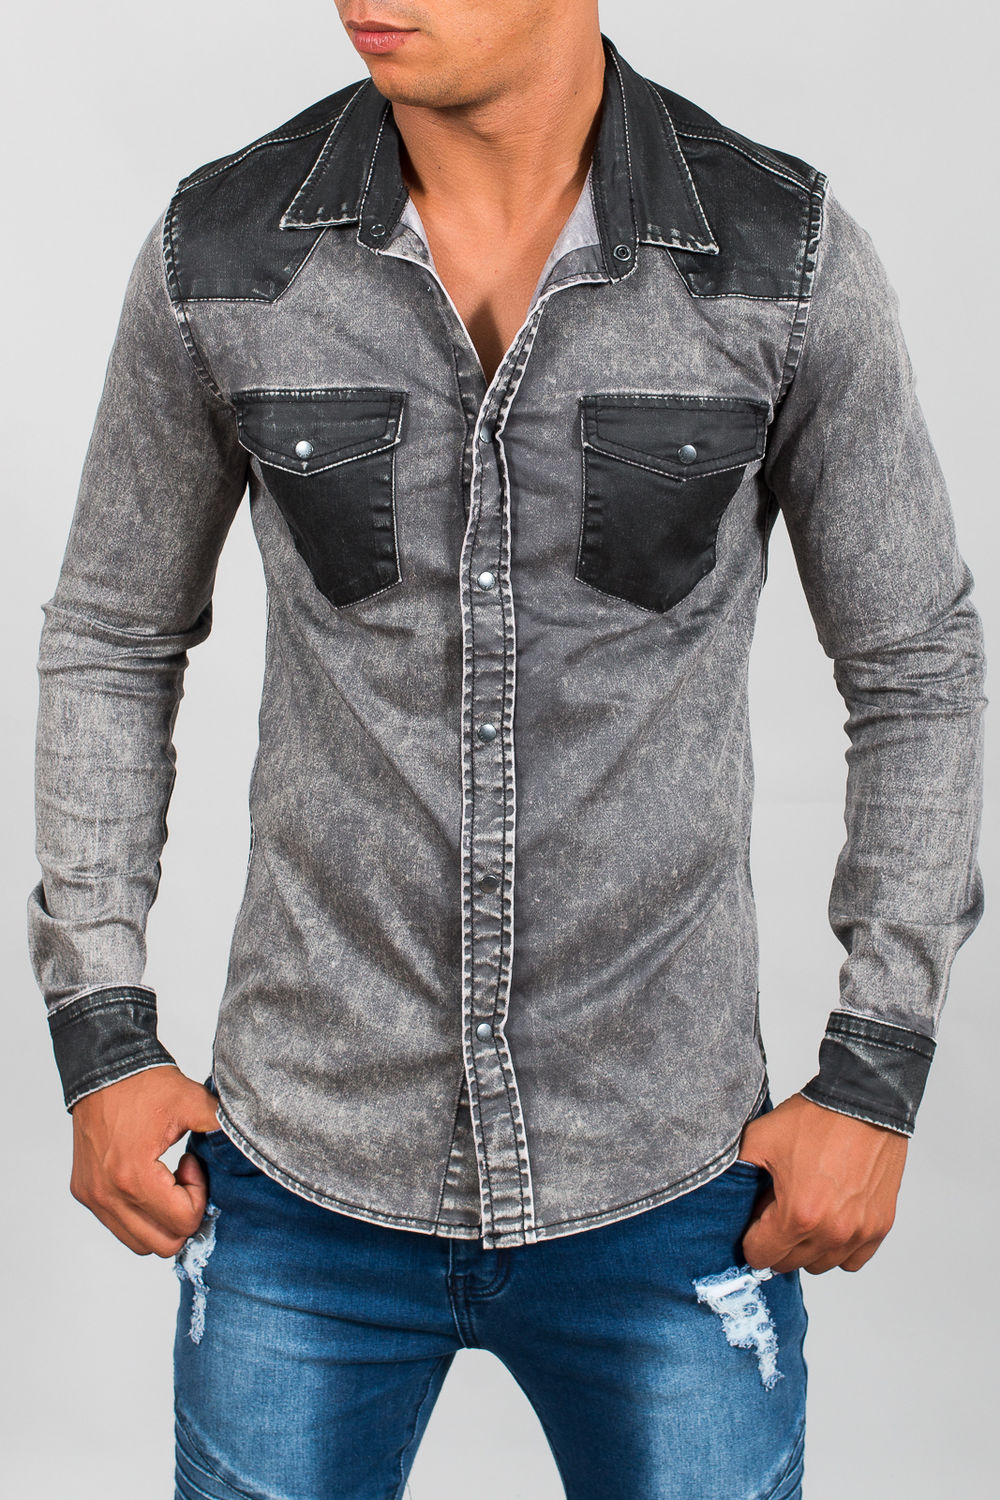 Homme Huilées Chemise Jeans Poches Gris 2093 ygYfb76v